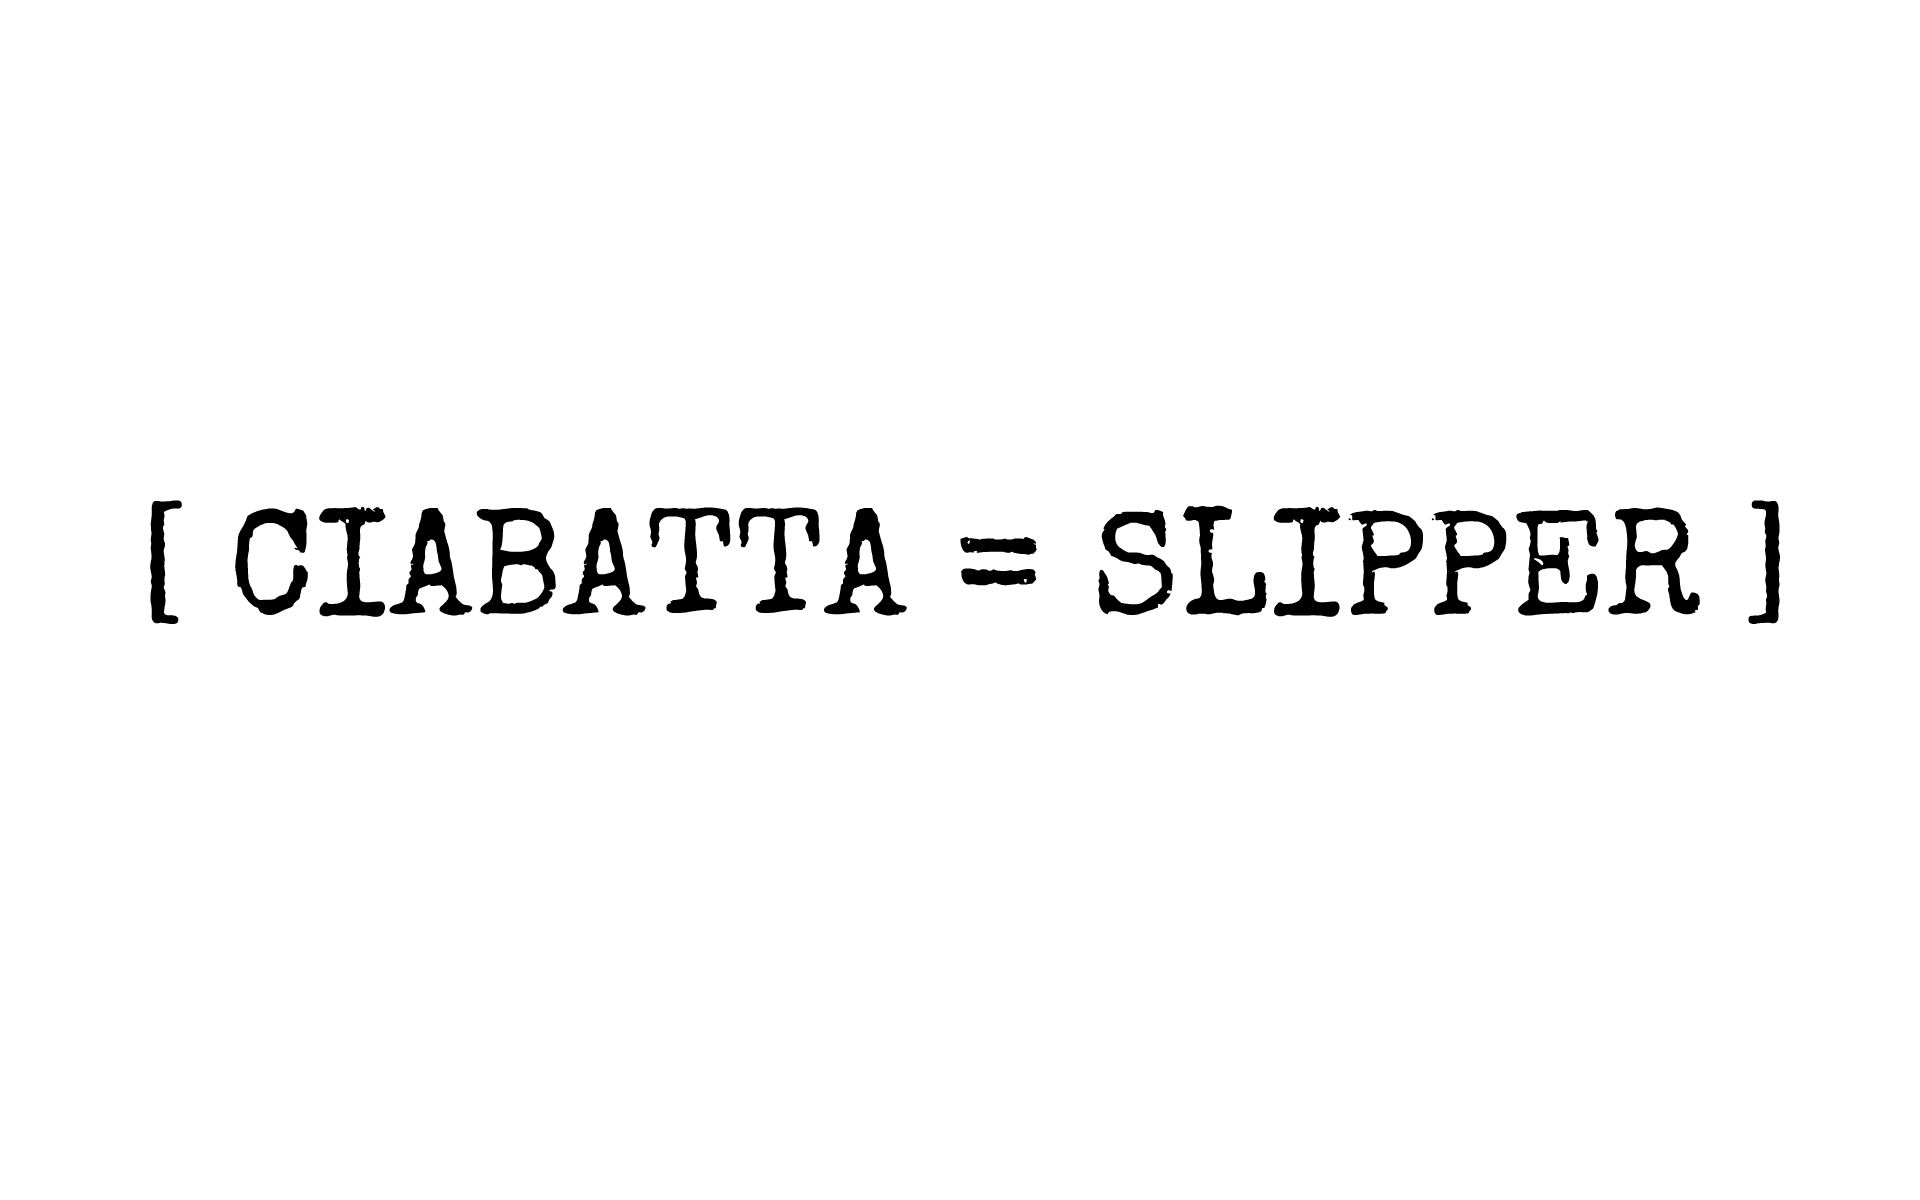 ciabatta slipper